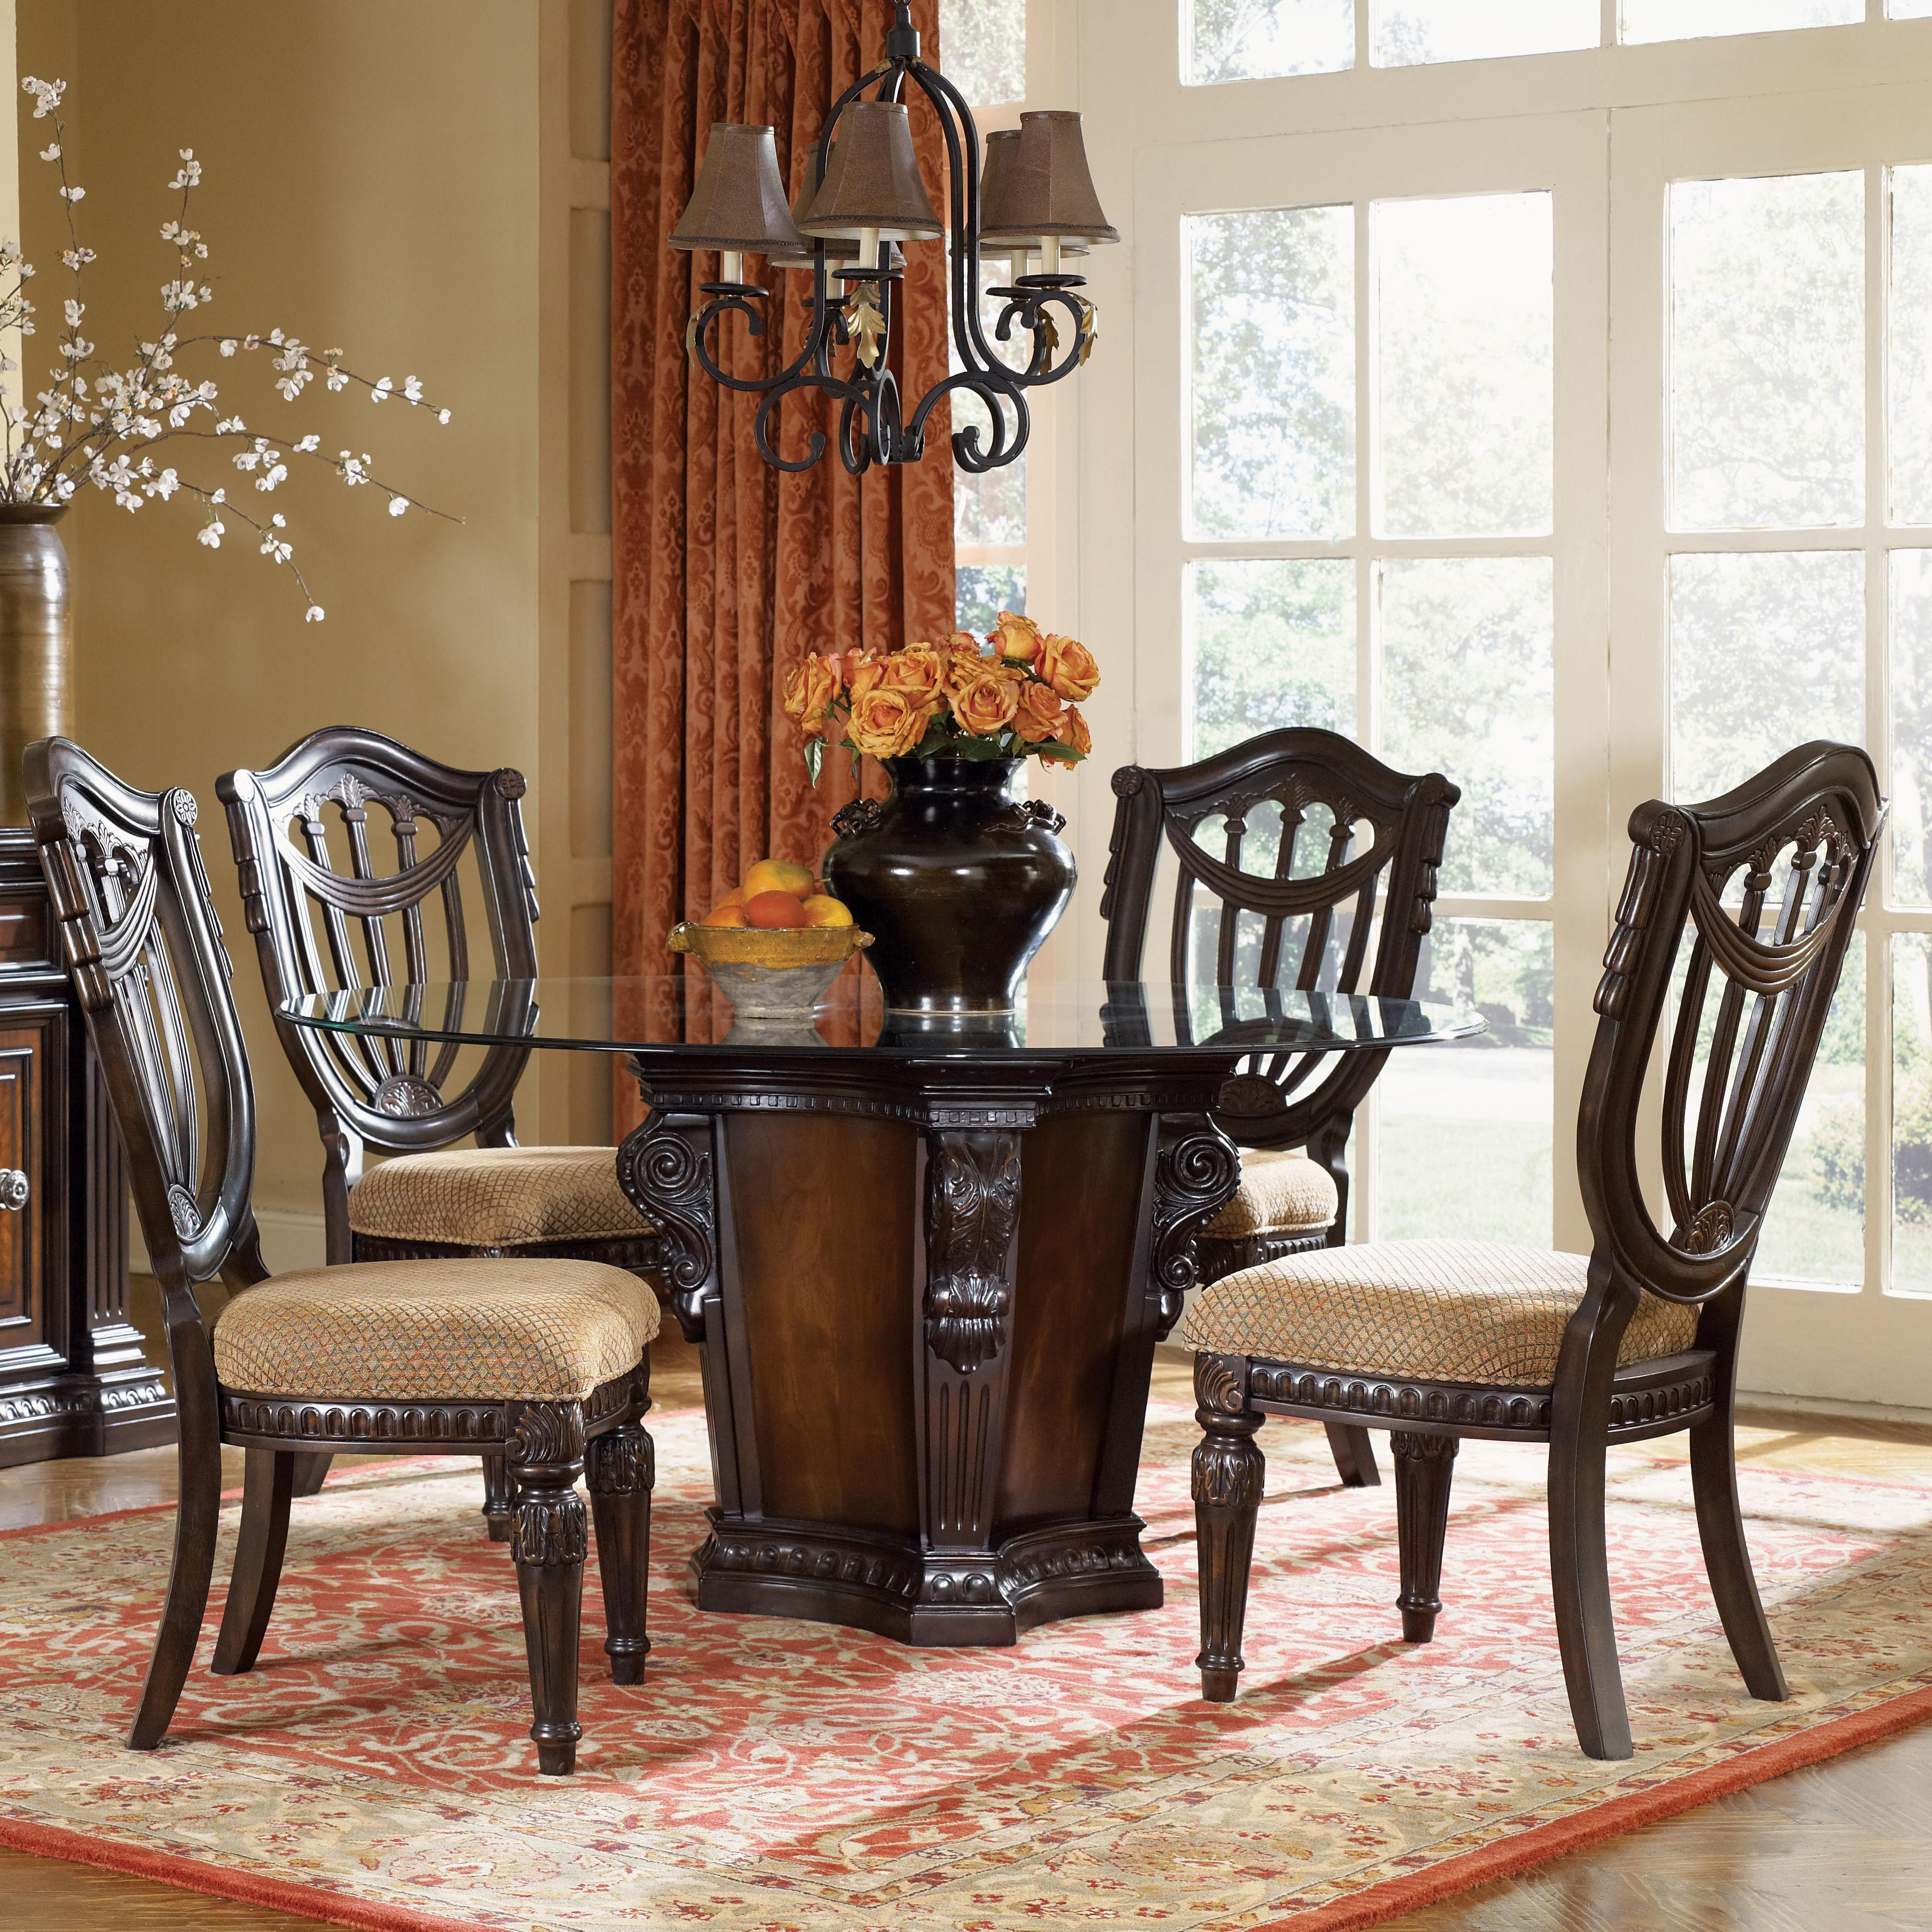 2020 5 Piece Dining Sets regarding Fairmont Designs Grand Estates 5 Piece Dining Table And Chairs Set